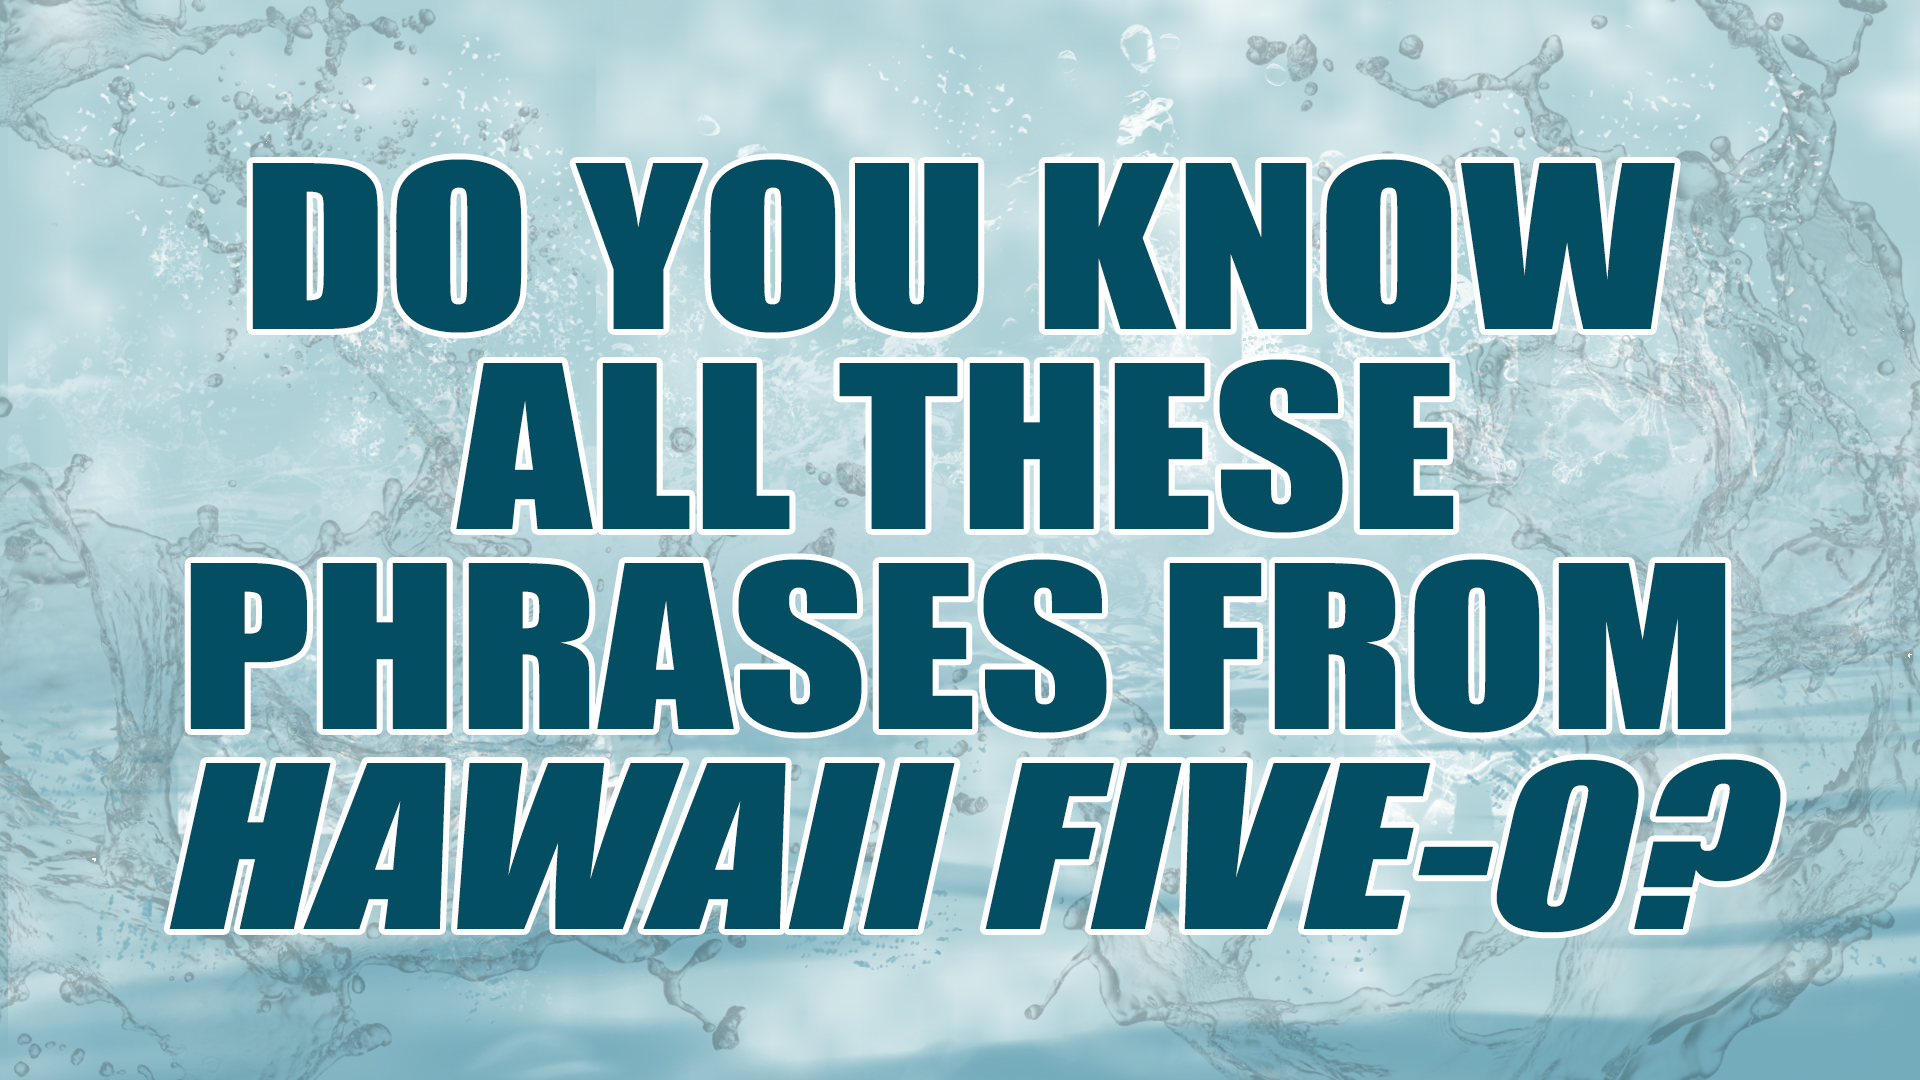 See if you've picked up any Hawaiian while watching the show.